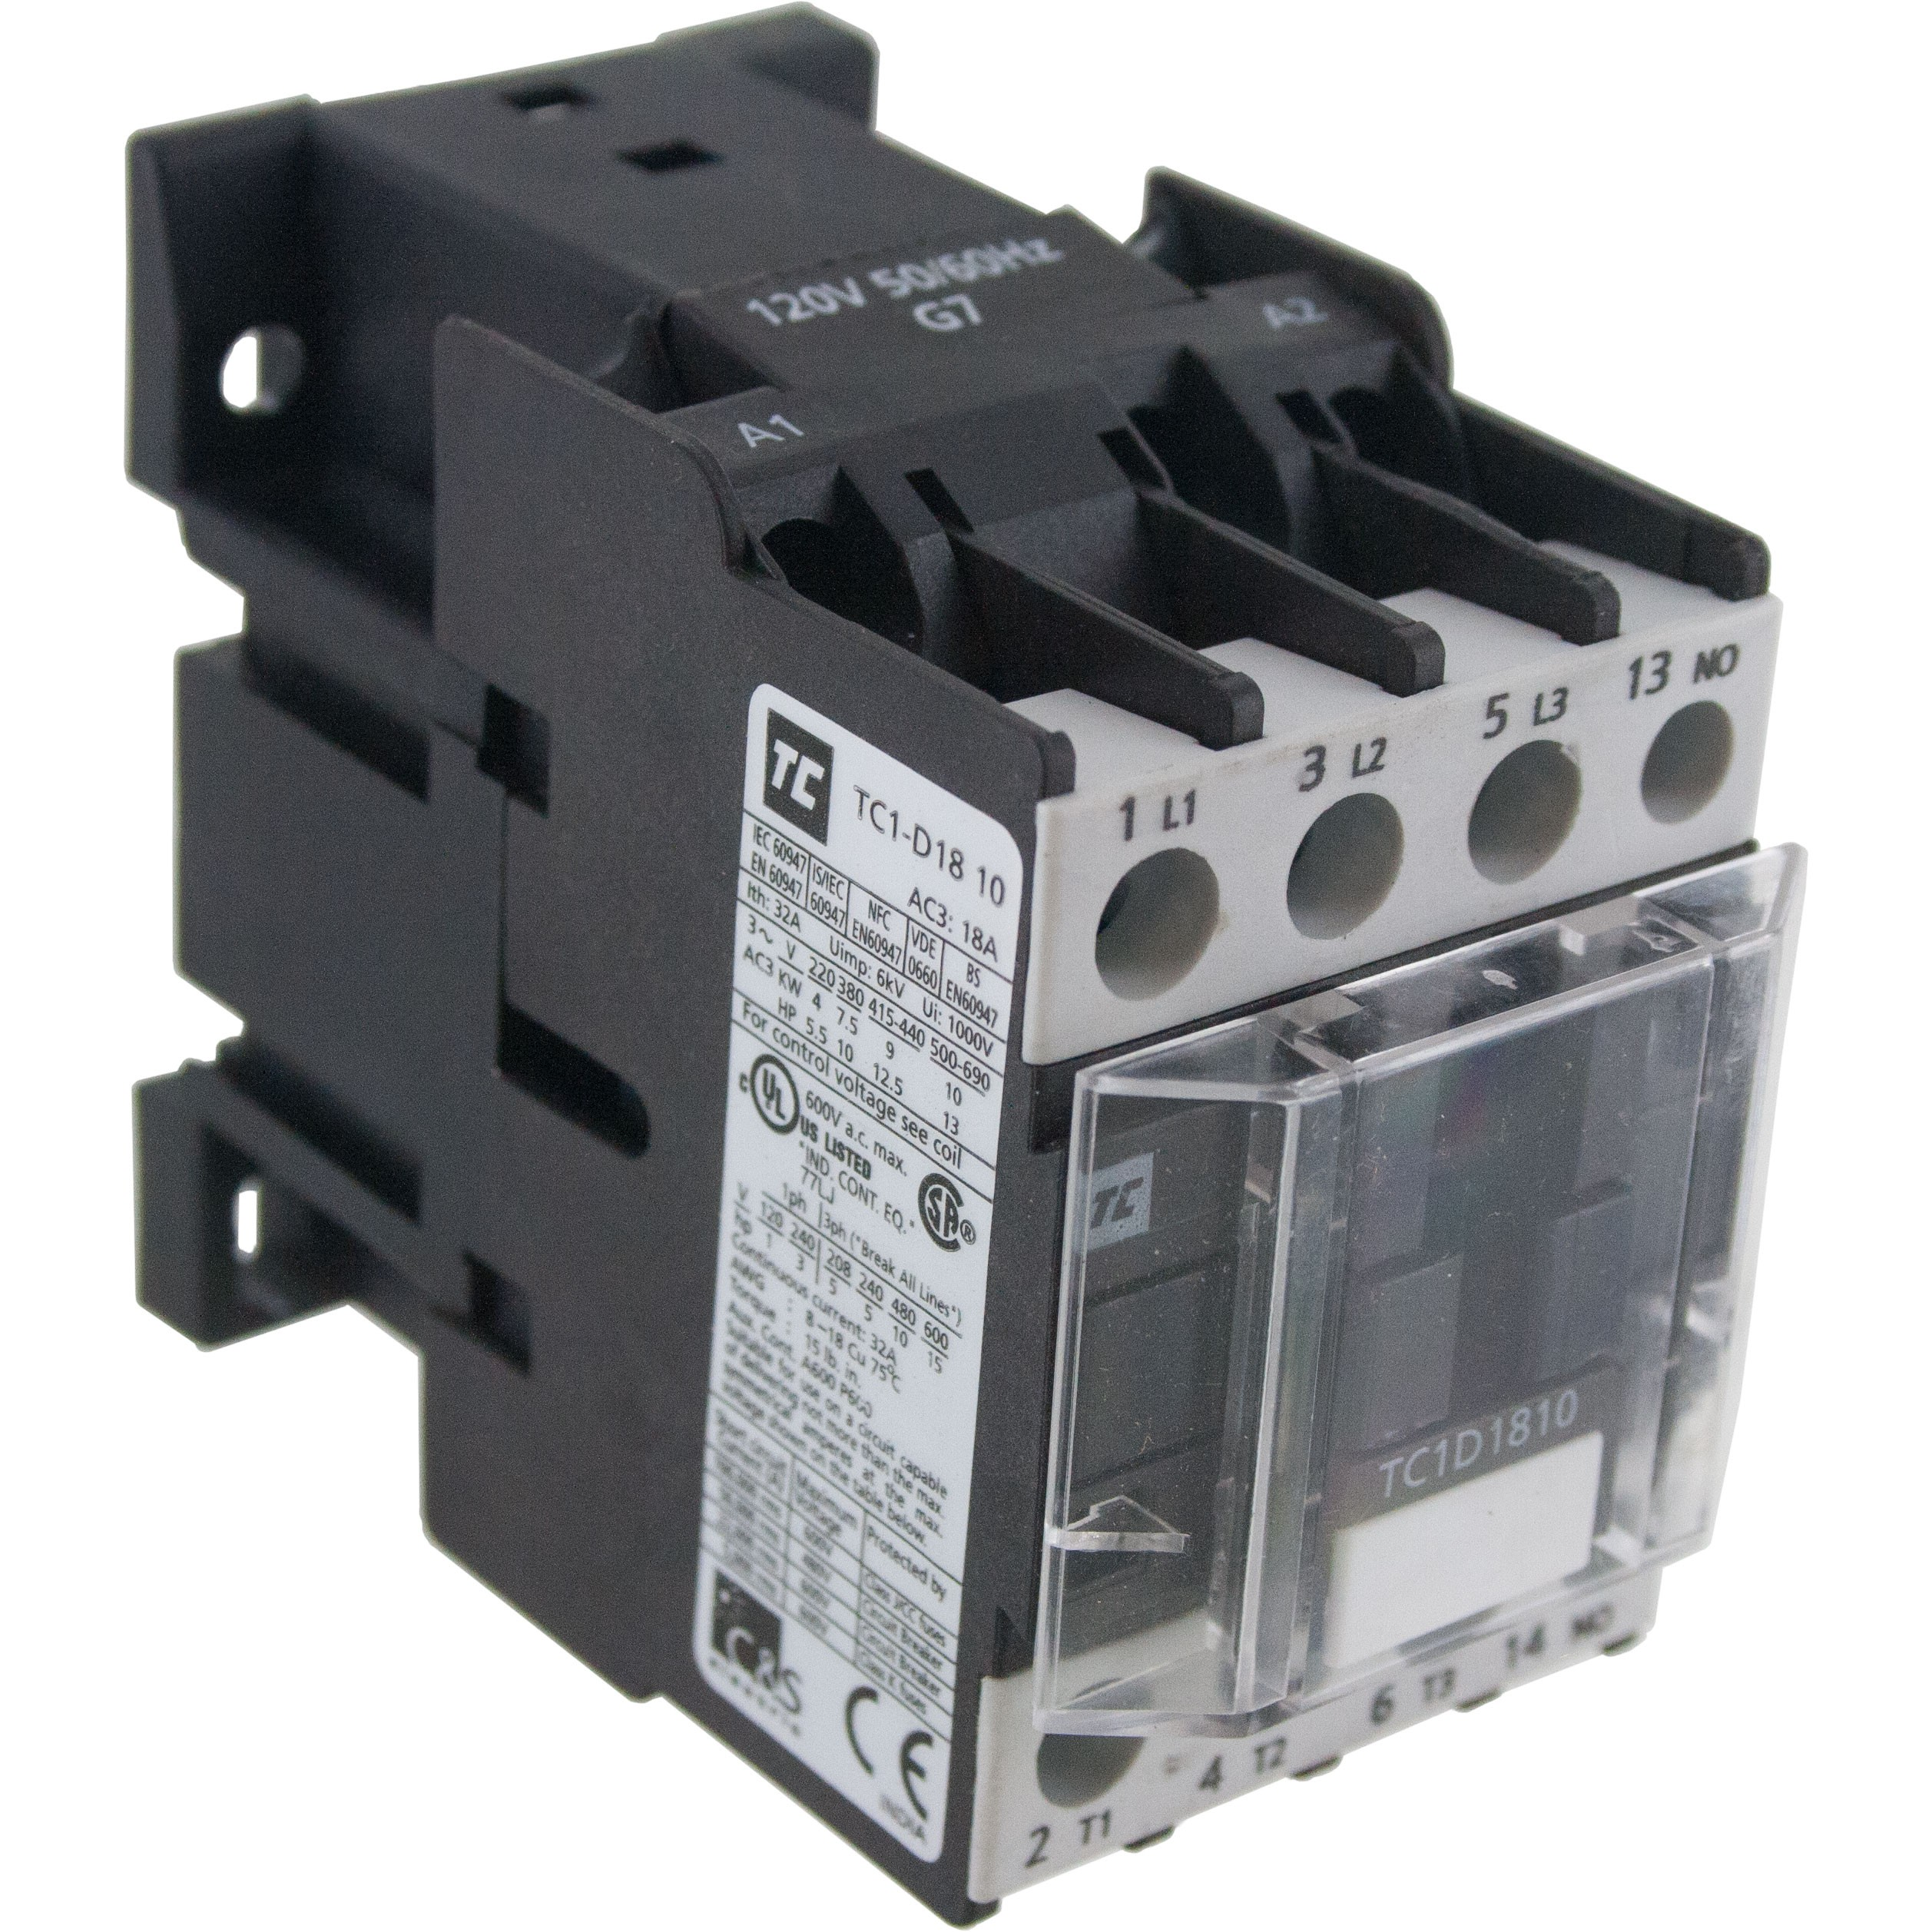 3 Pole Contactor 18 Amp 1 N/O 415 Vac Coil Angle